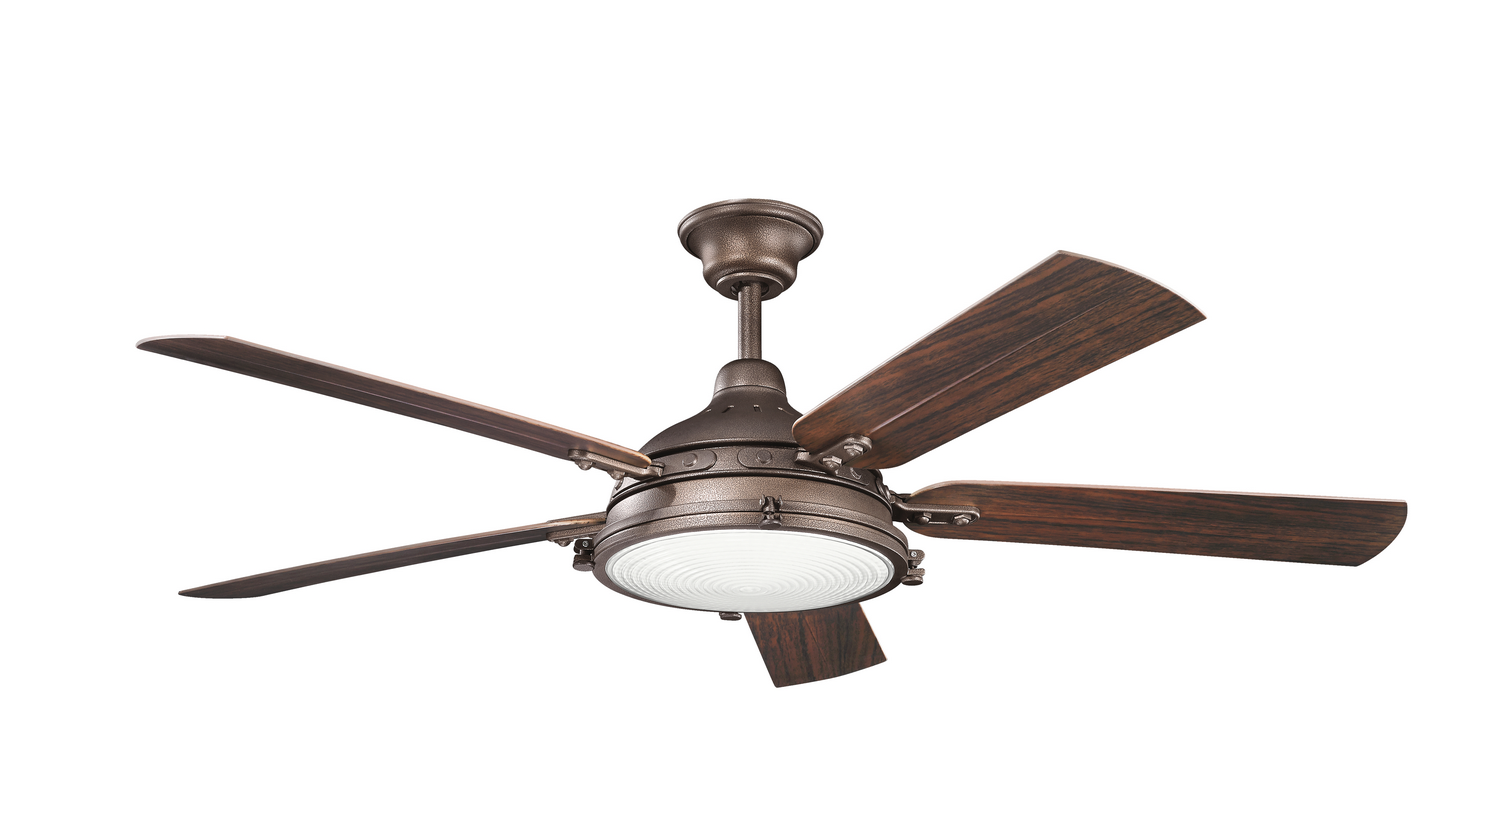 60 inchCeiling Fan from the Patio collection by Kichler 310117WCP